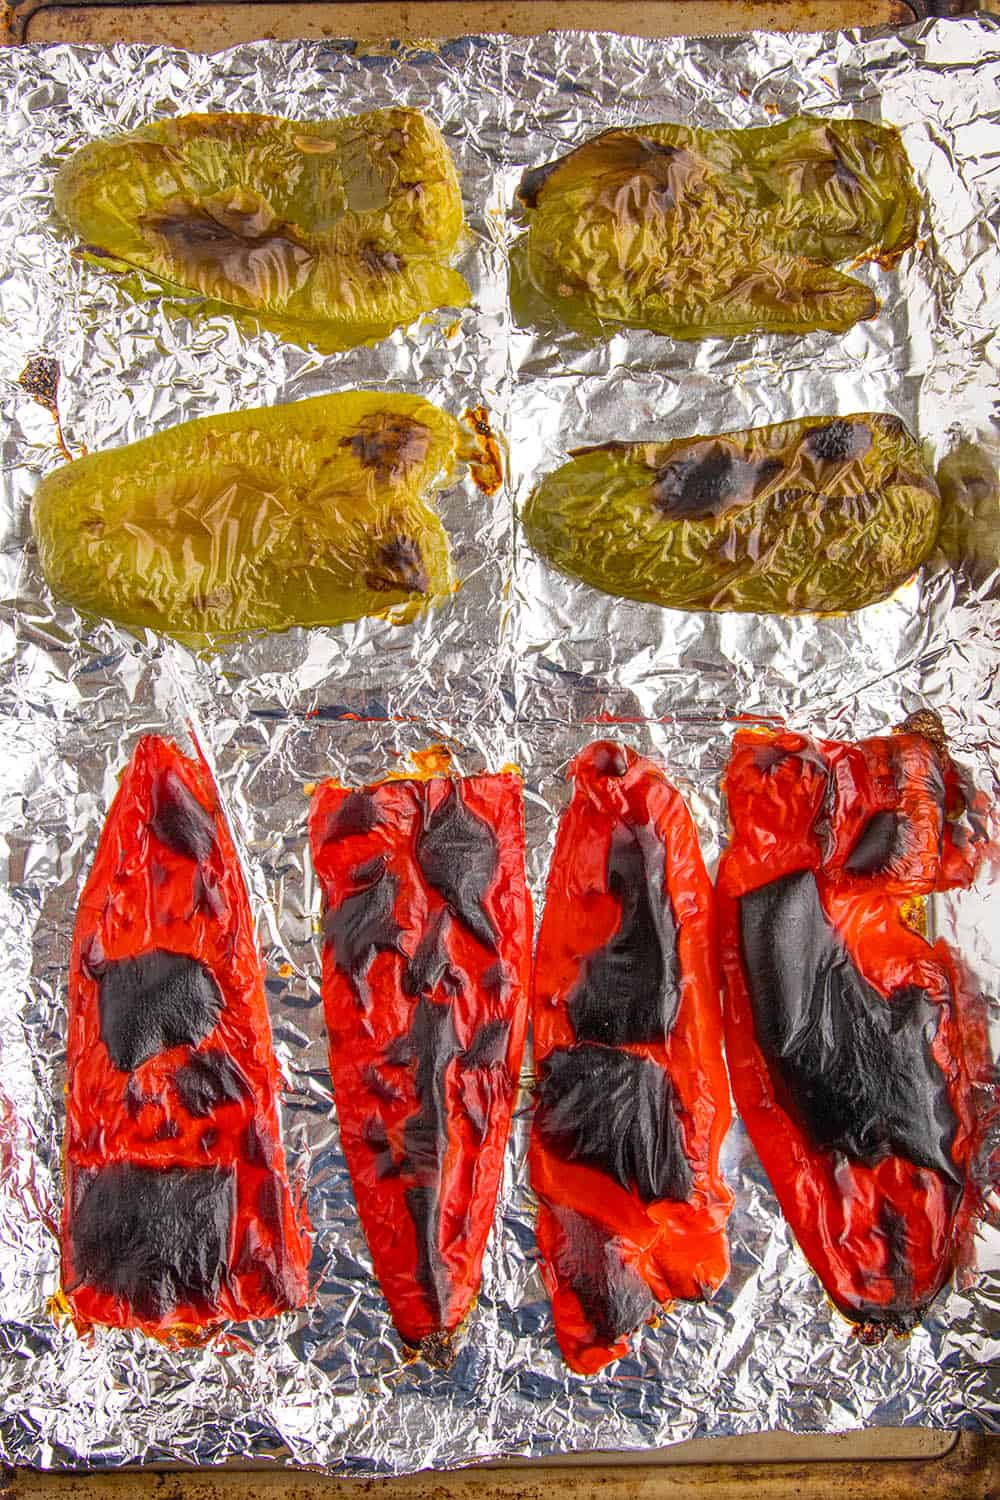 Roasted peppers just out of the oven